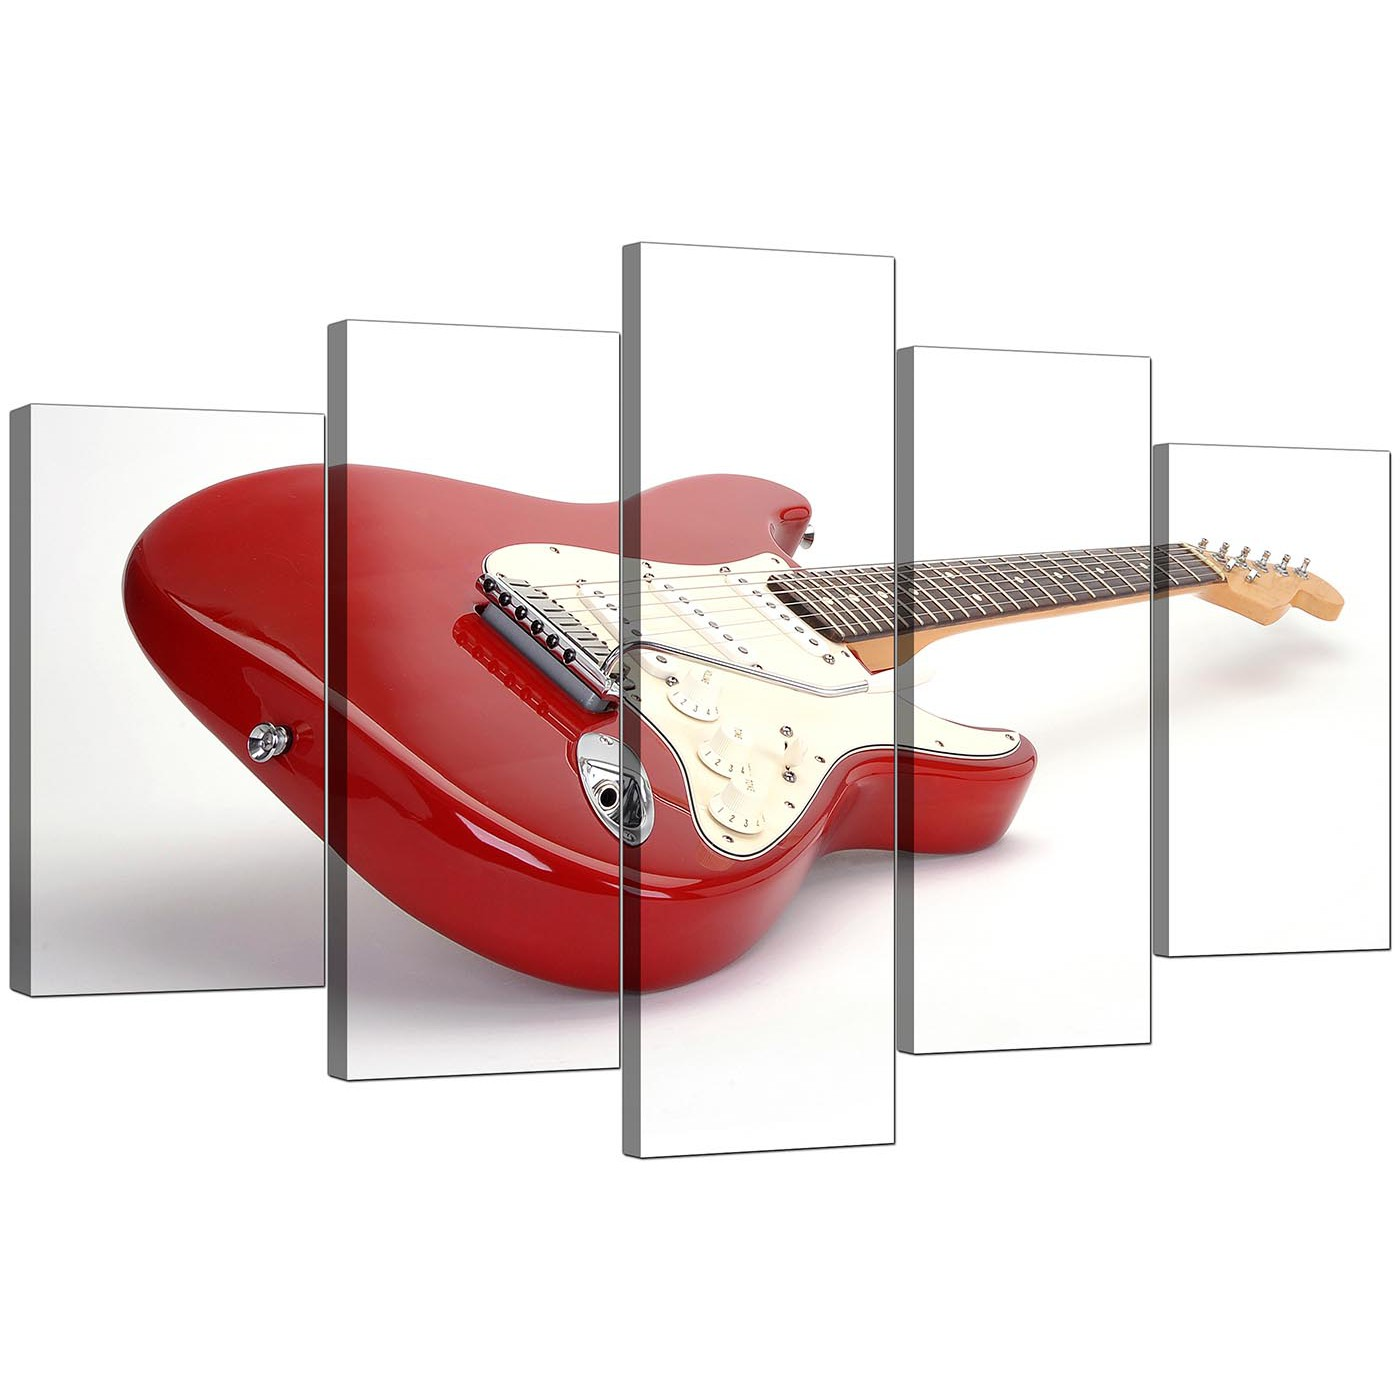 Display Gallery Item 4; Set Of Five Living-Room Red Canvas Pictures Display Gallery Item 5  sc 1 st  Wallfillers & Extra Large Guitar Canvas Wall Art 5 Panel in Red